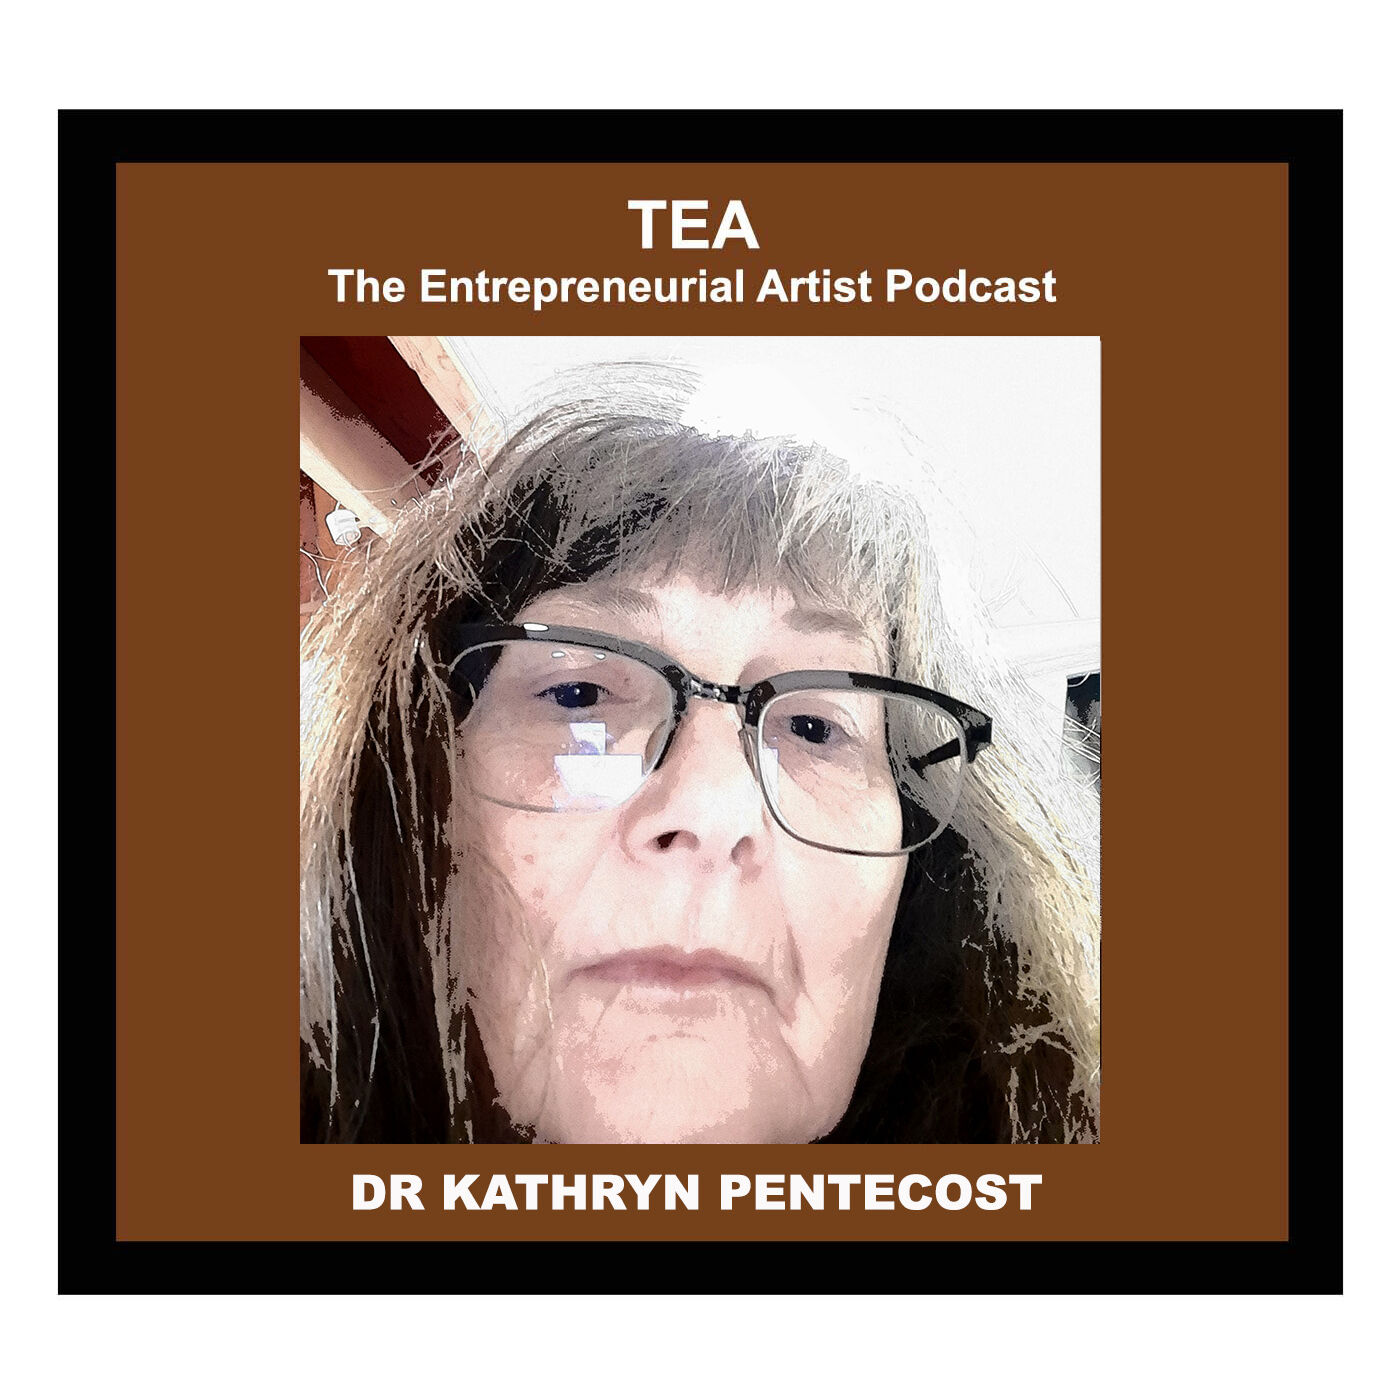 A chat with Dr Kathryn Pentecost, Writer & Cultural Entrepreneur